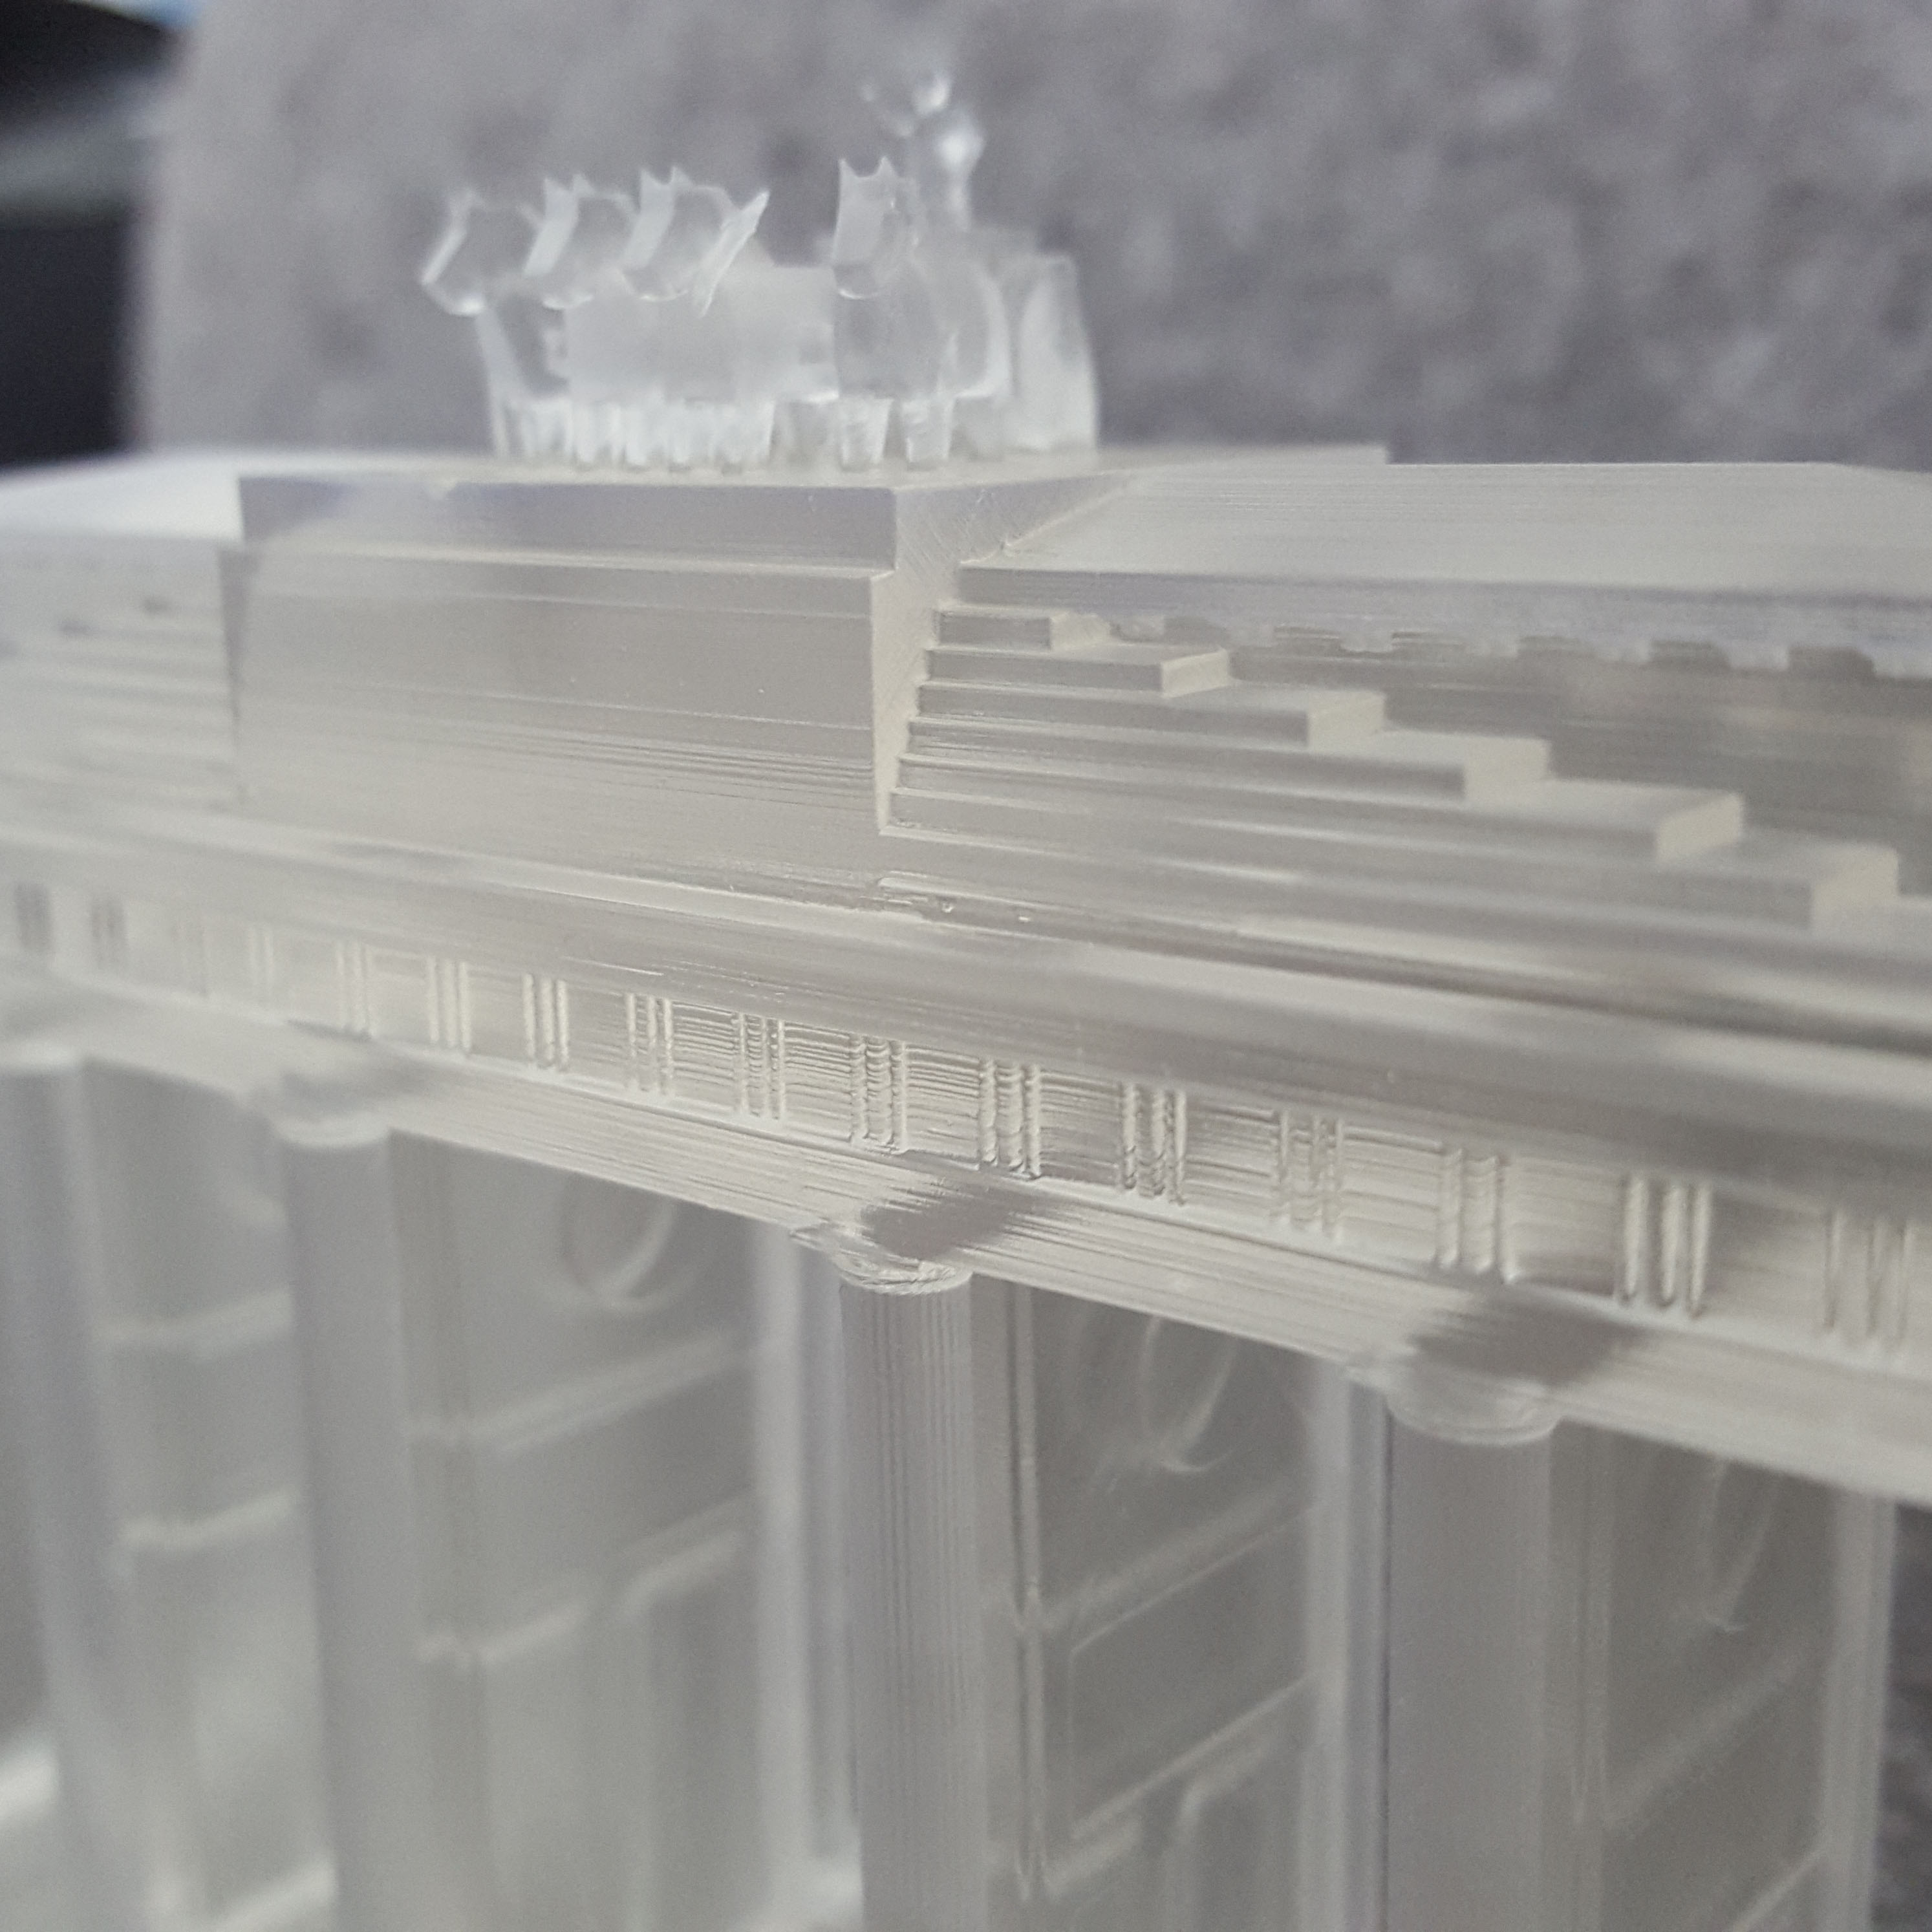 Brandenburg Gate 3D Printed in Resin